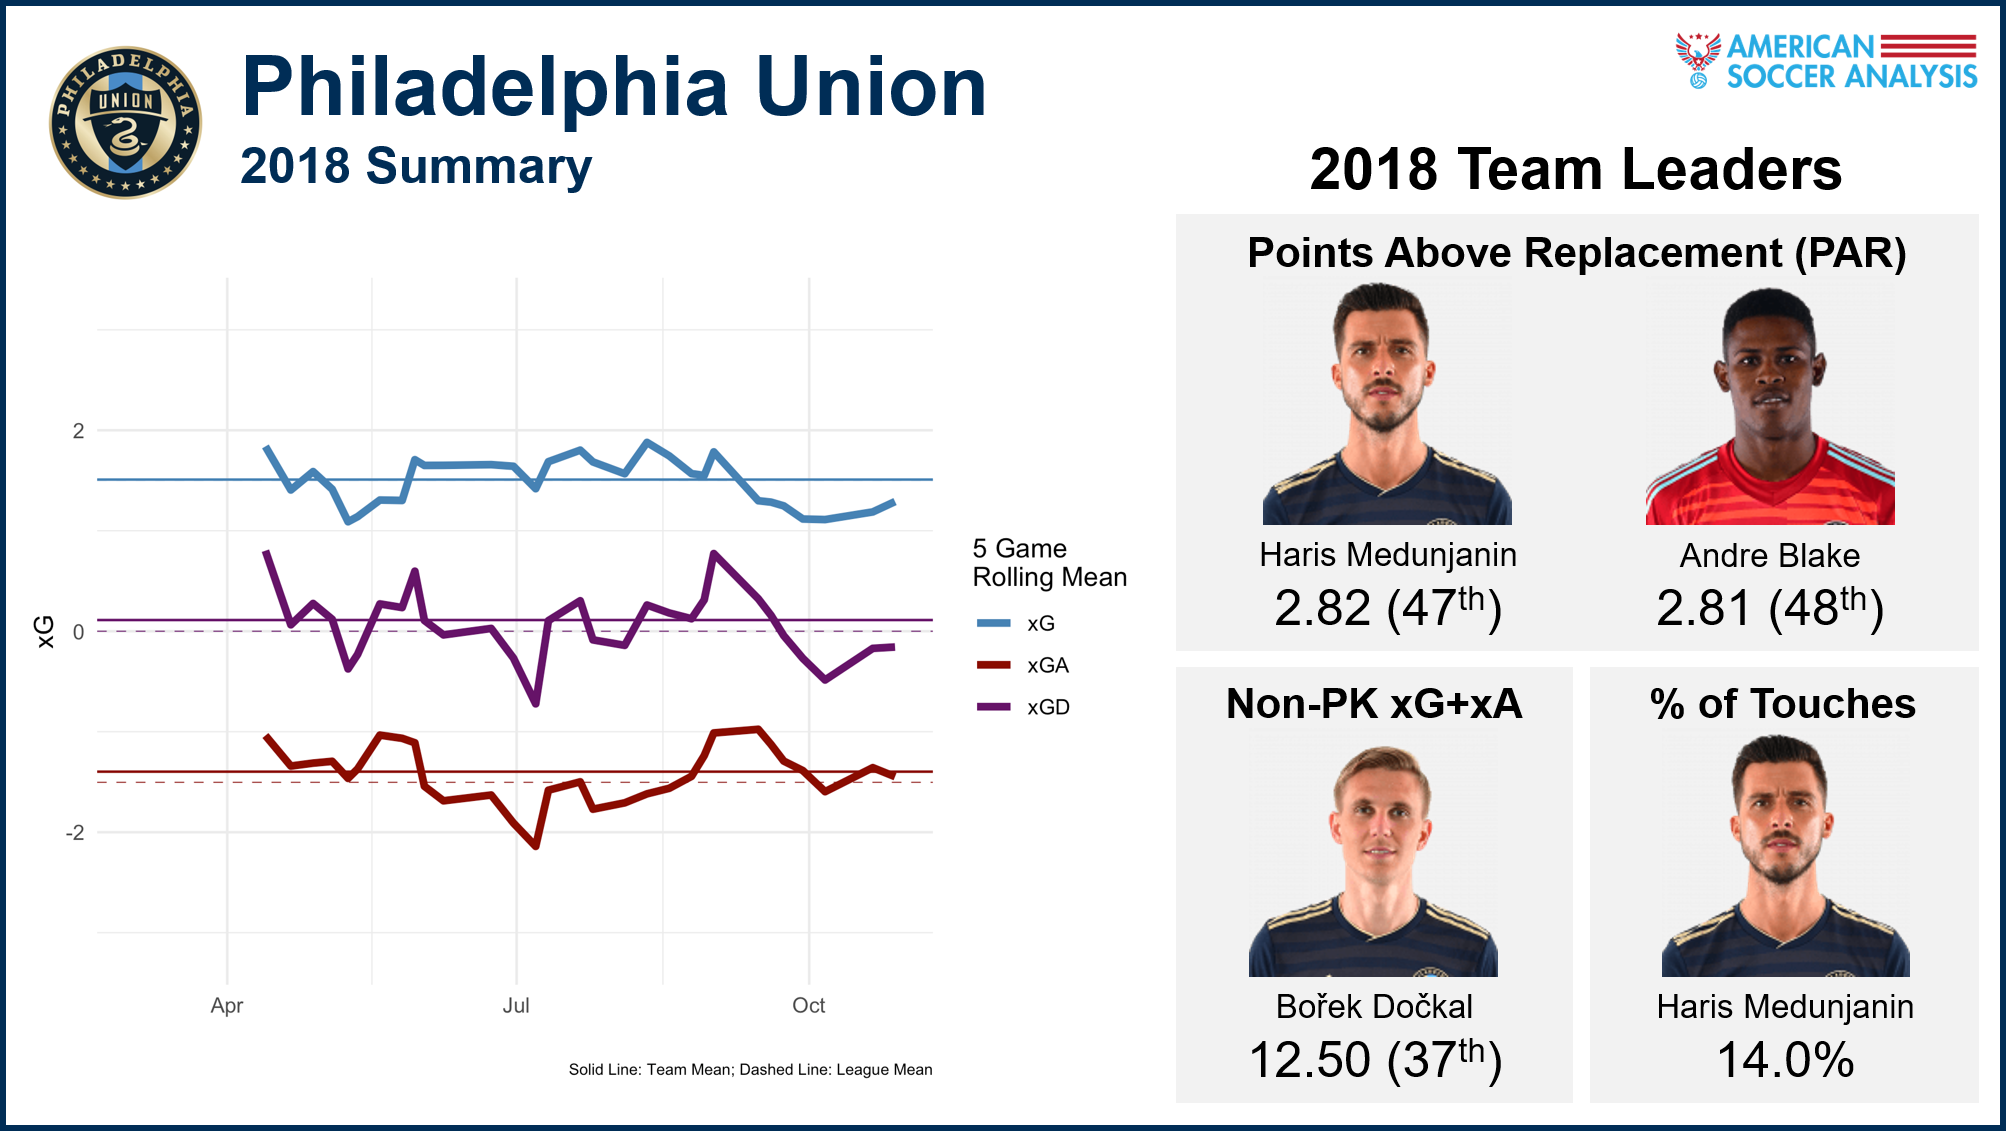 Point-above-replacement  values are  explained here .  Non-penalty expected goals + expected assists  are  explained here , and you can see all players' xG+xA in our  interactive expected goals tables .  Touch percent  is the percentage of total team touches by that player while he is on the field, which can be found in our  interactive expected passing tables.